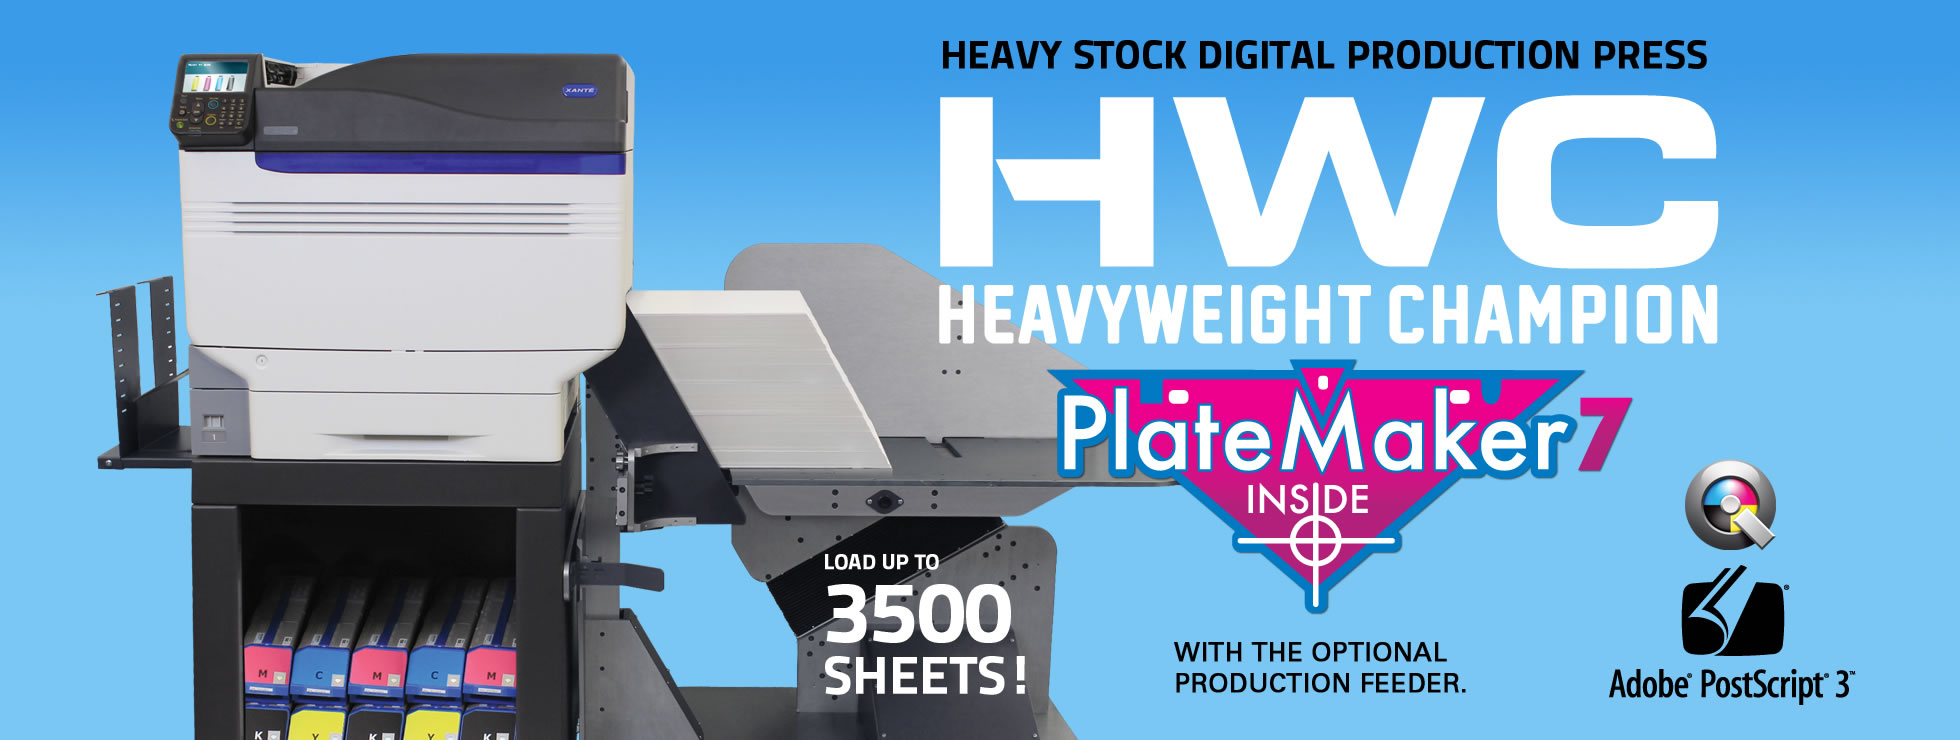 HWC Heavyweight Champion Ultra Heavy Stock Digital Print System